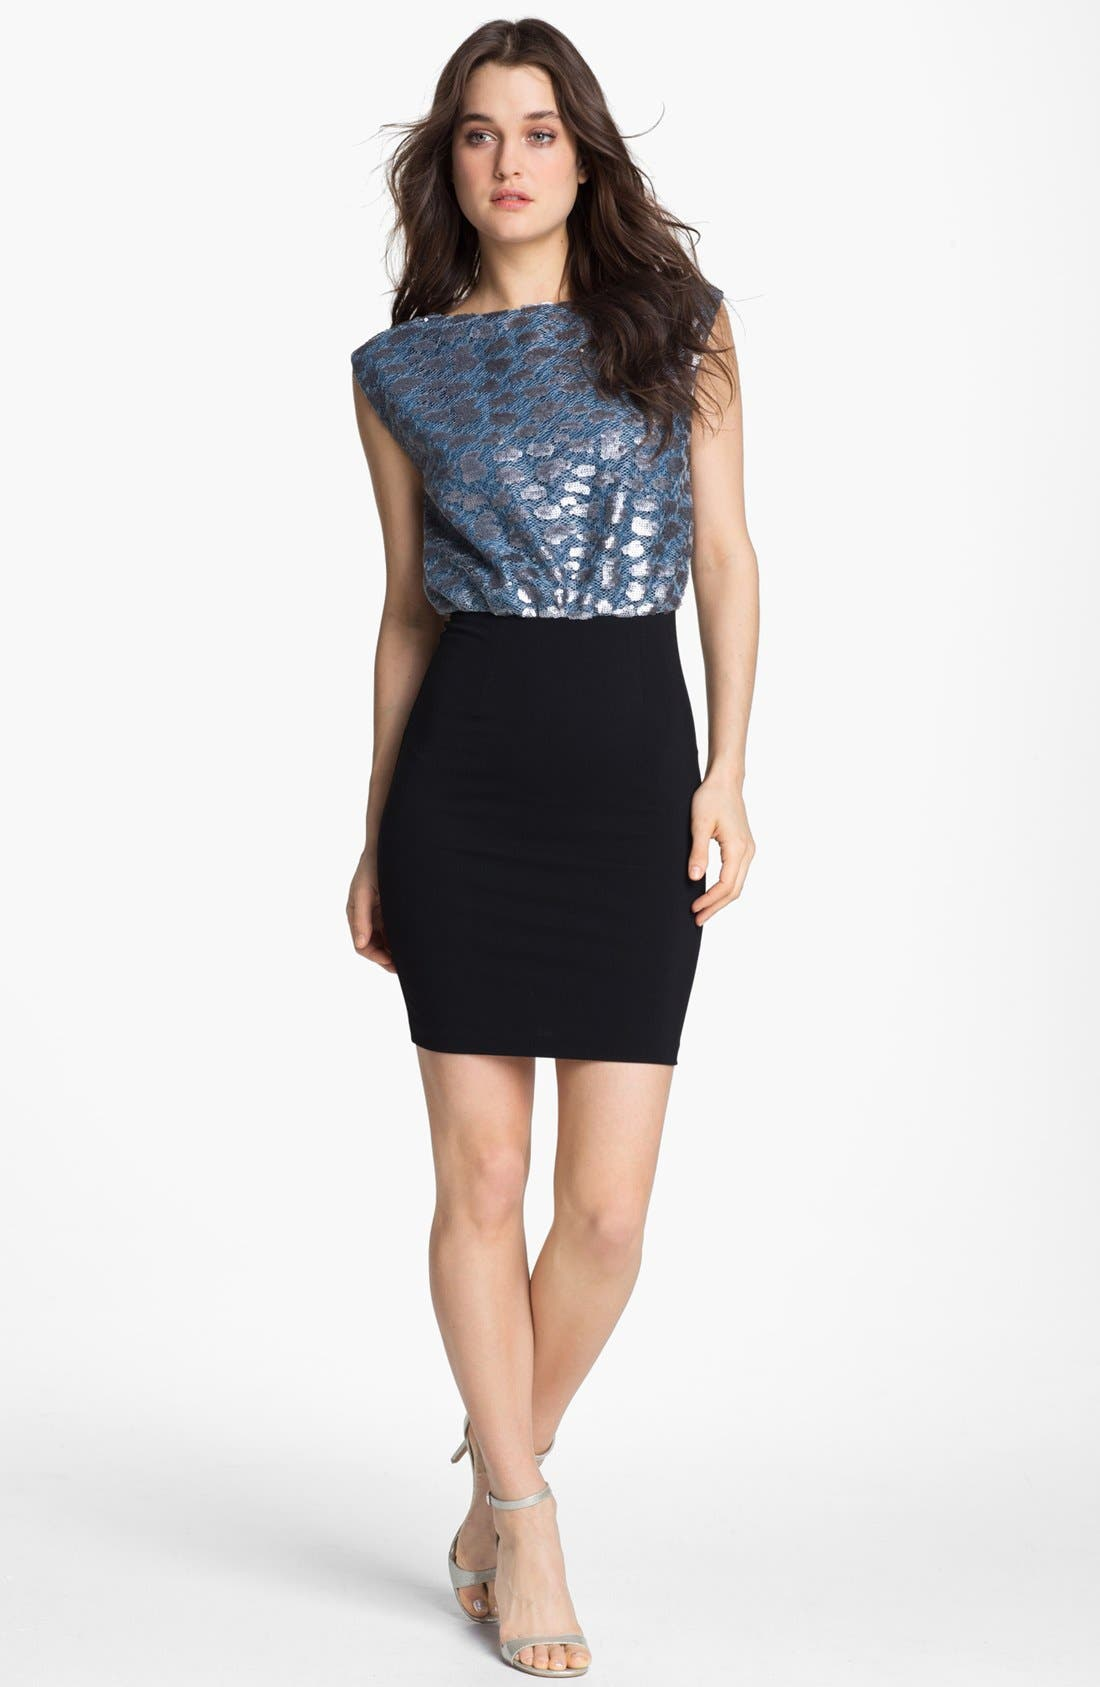 Alternate Image 1 Selected - ERIN erin fetherston Metallic Blouson Pencil Dress